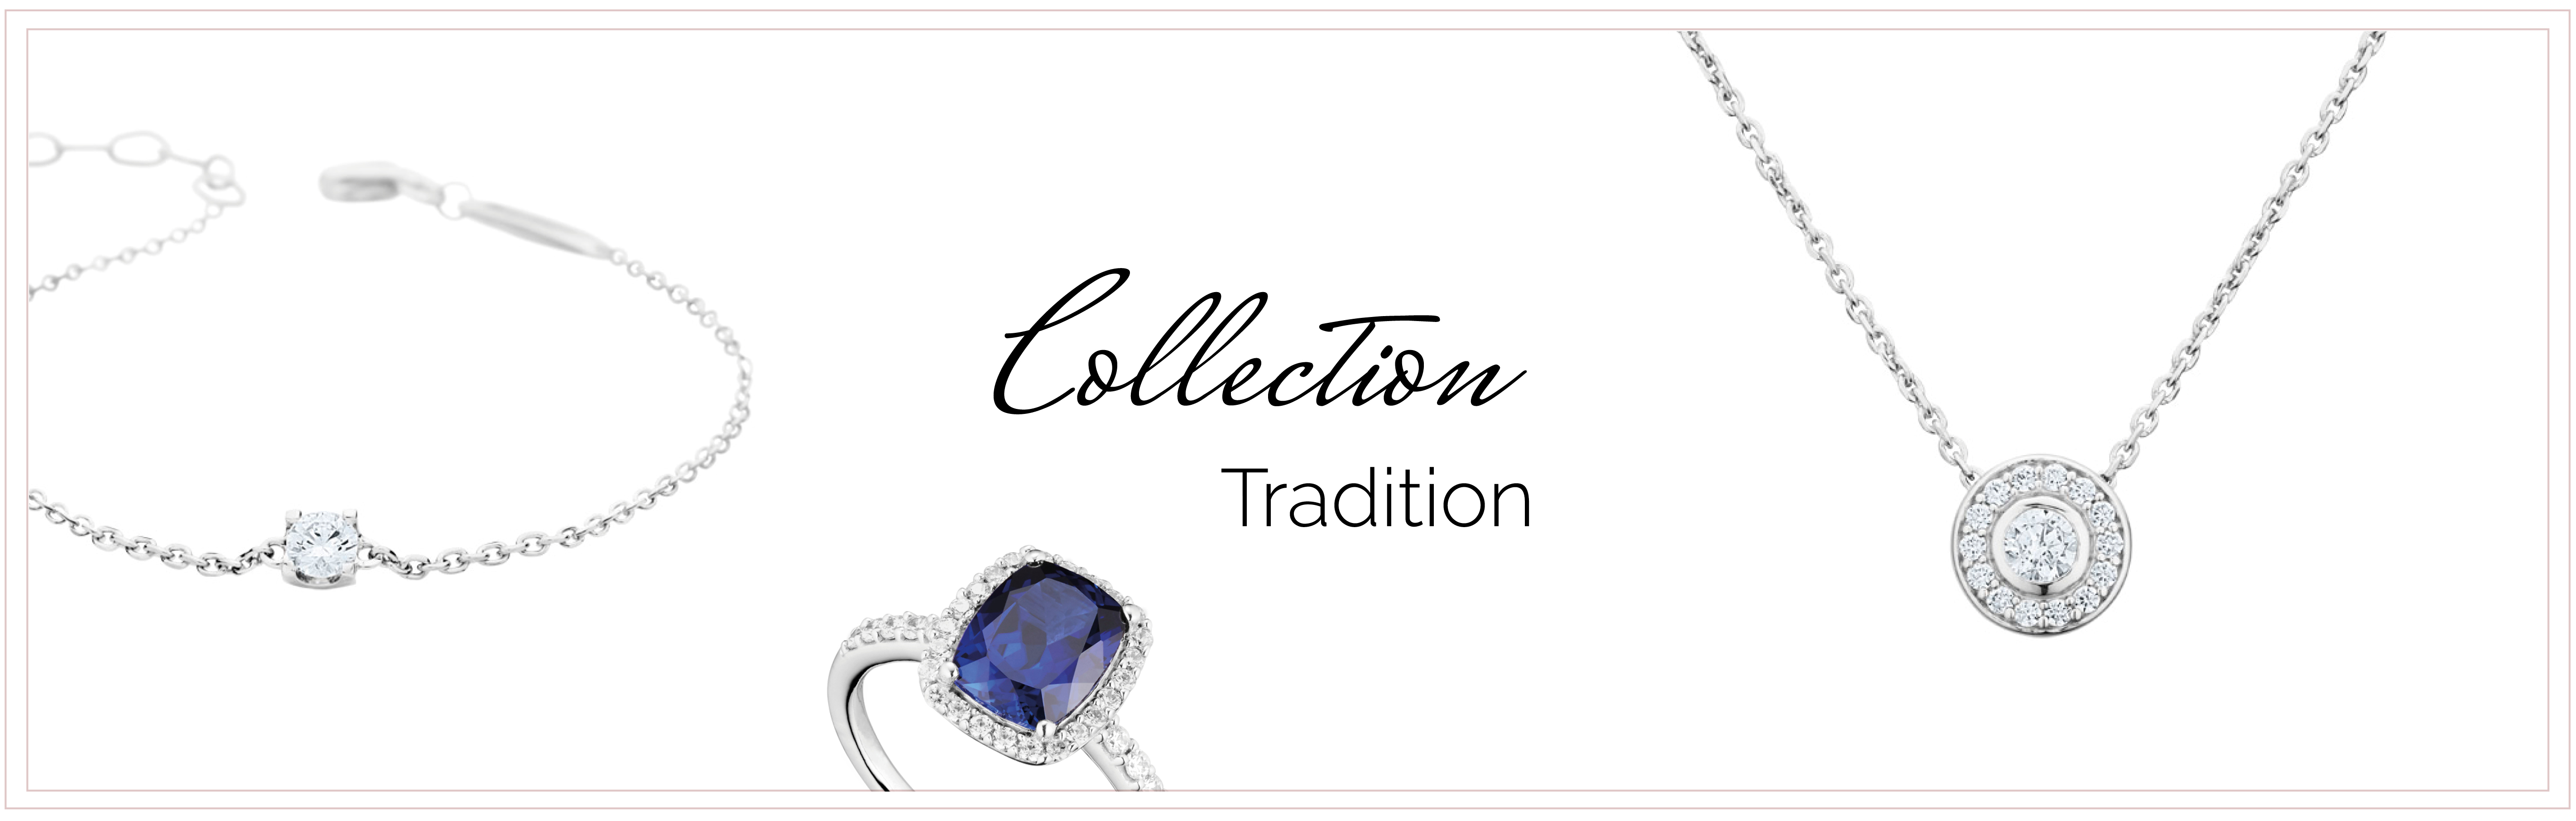 bijoux argent rhodié collection tradition